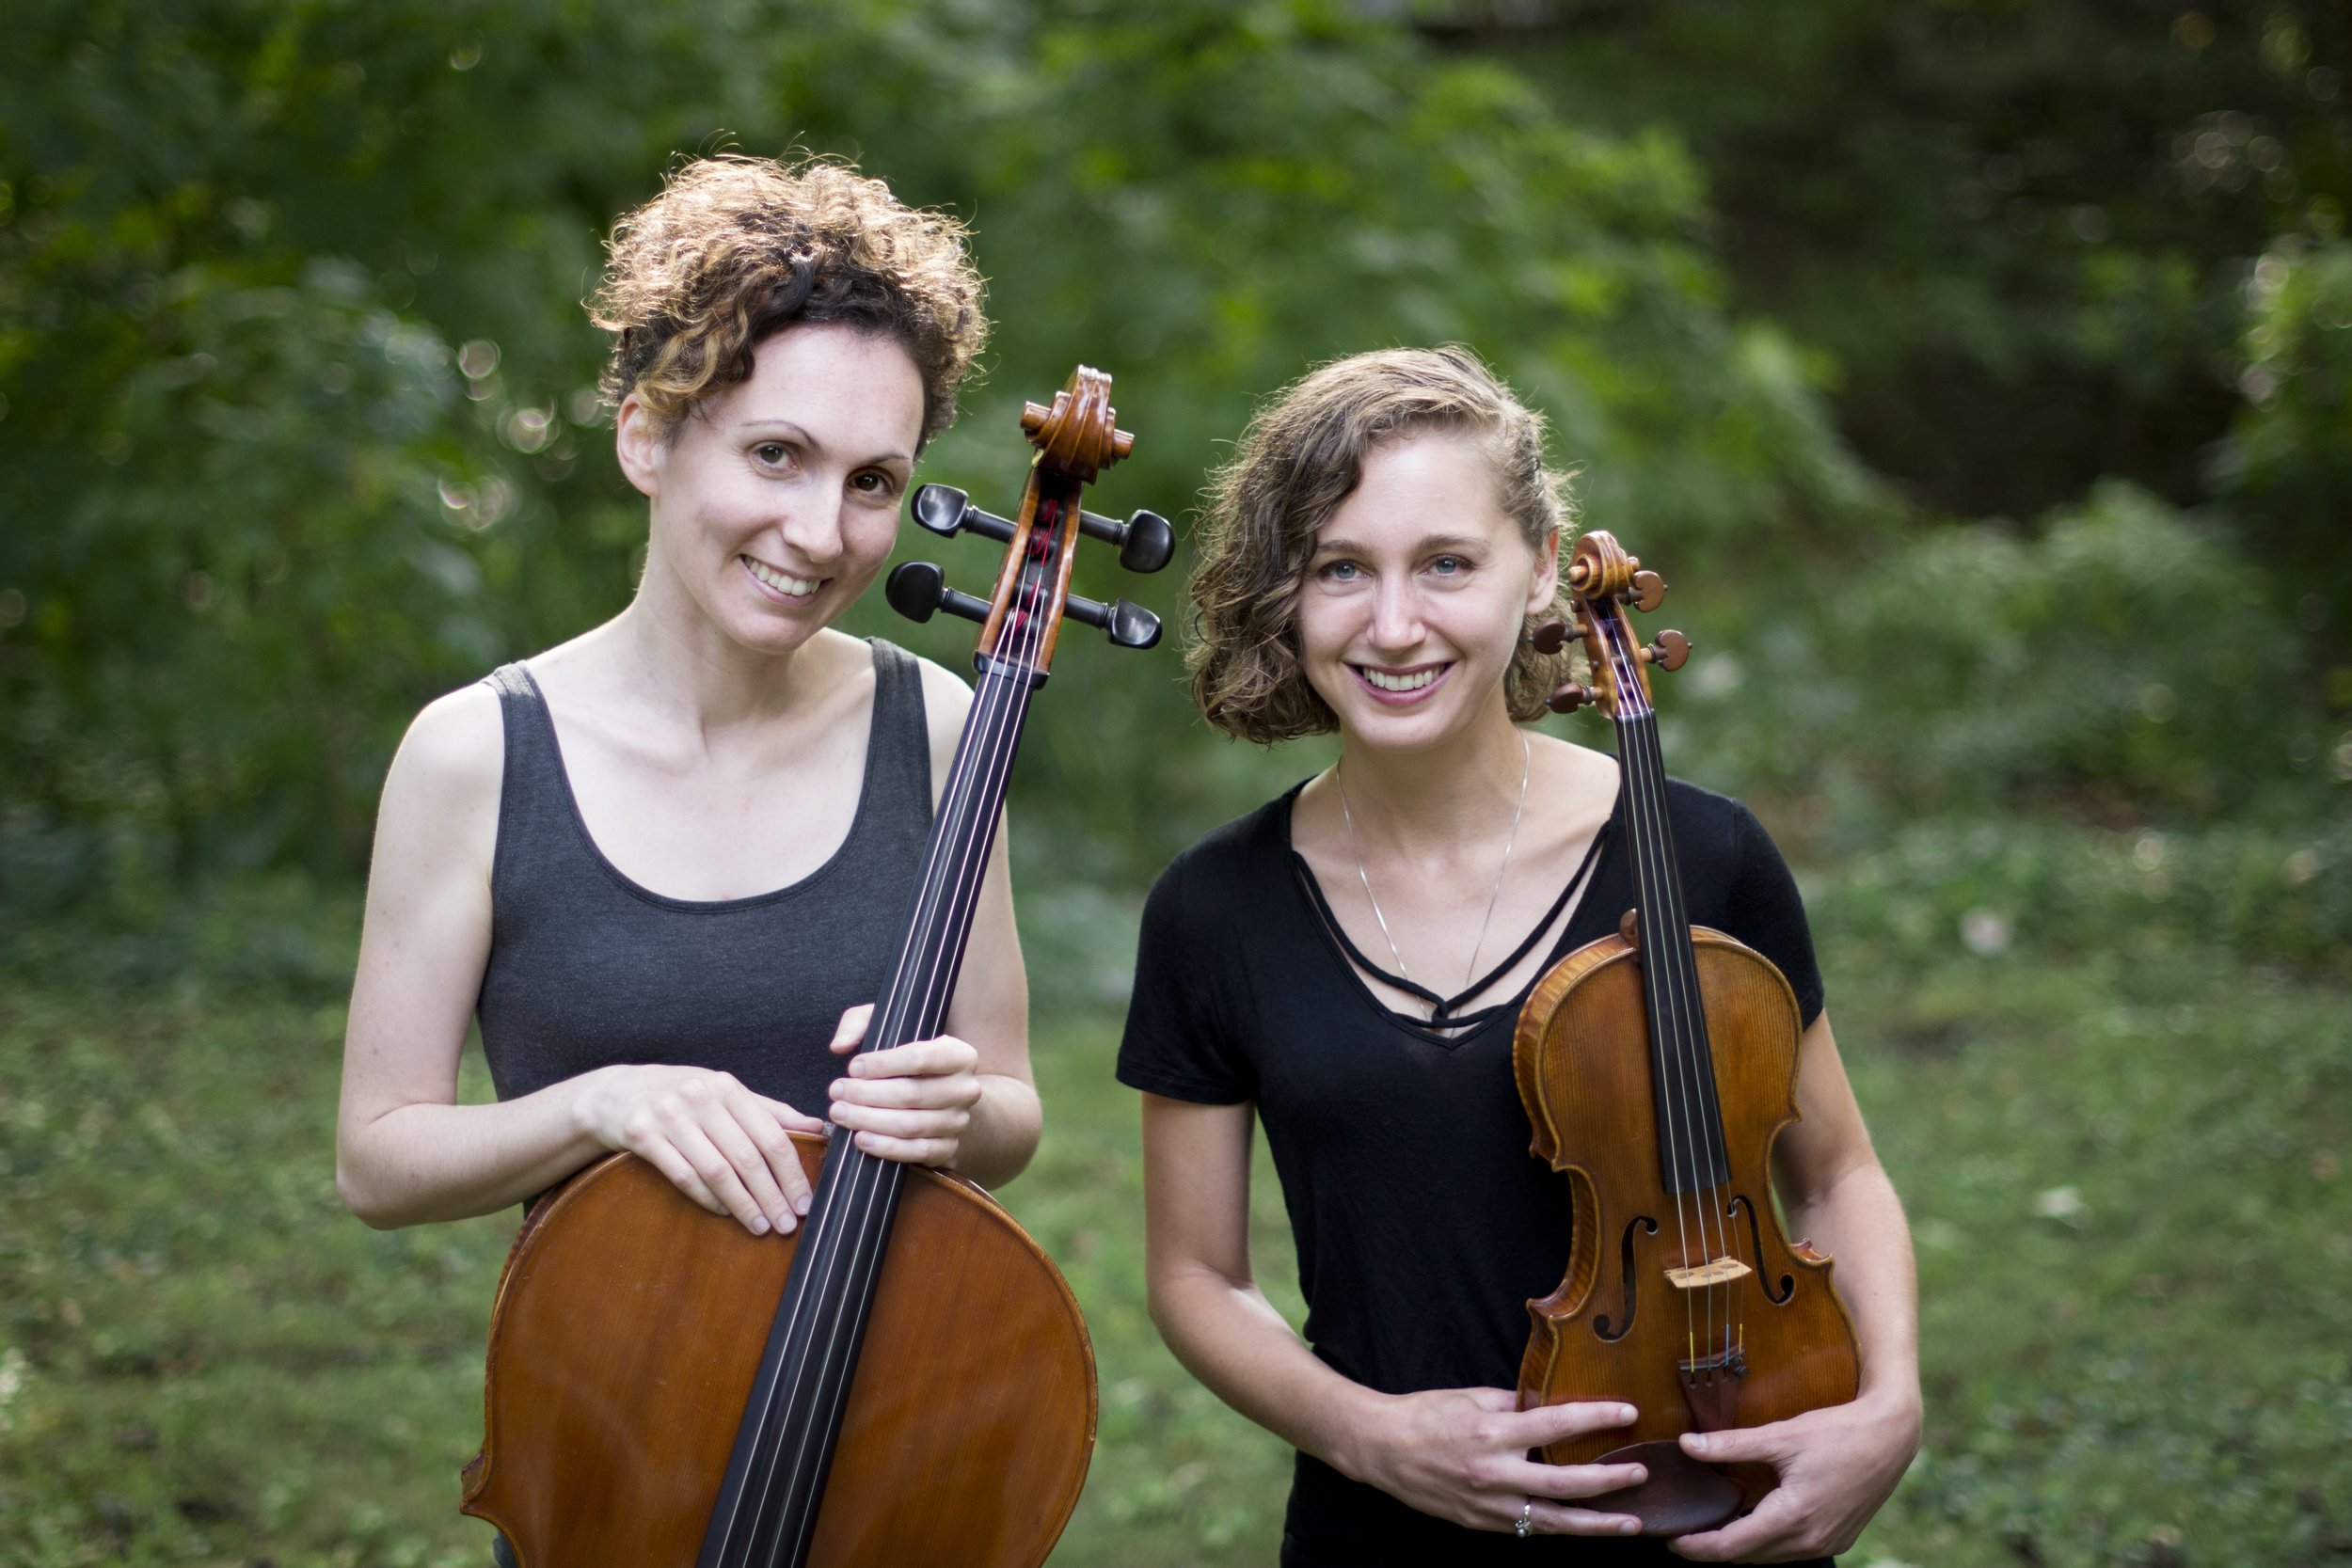 PRICE HILL DUO -